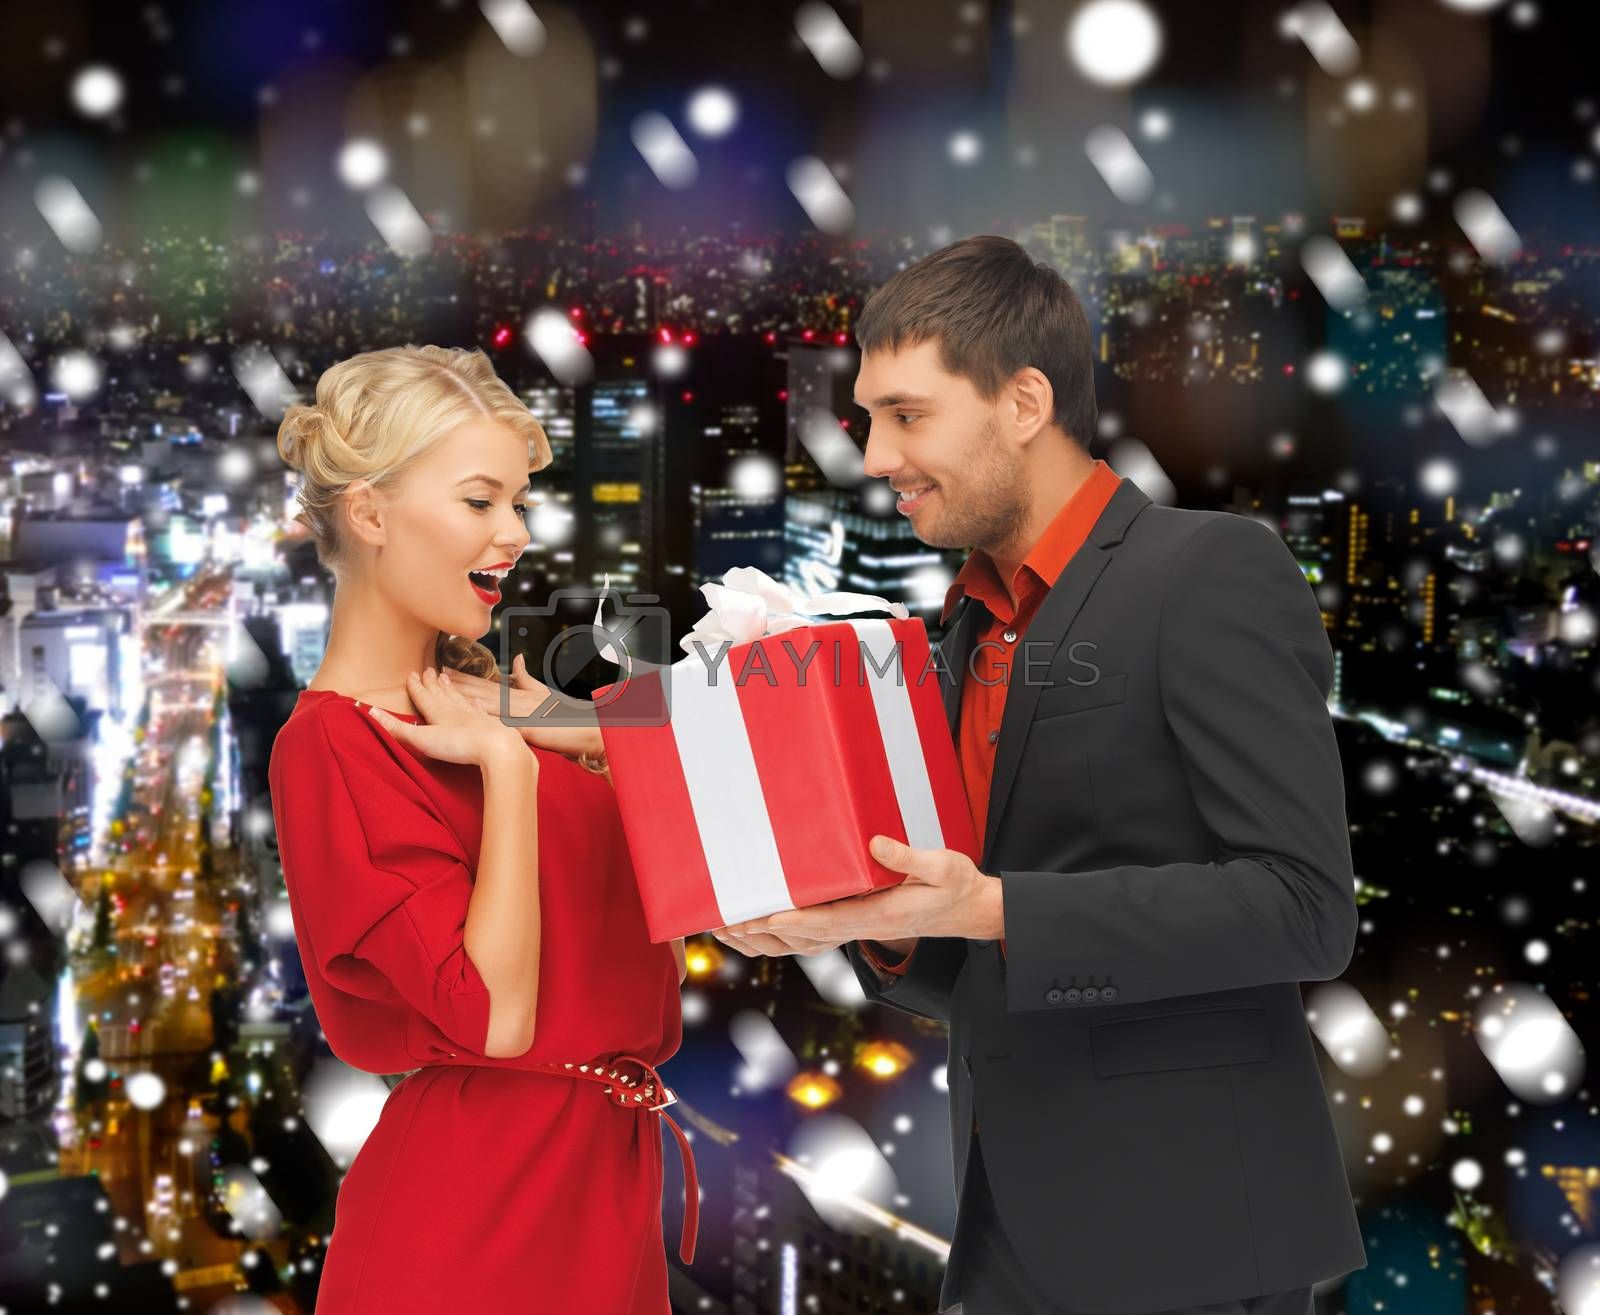 christmas, holidays, celebration and people concept - smiling man and woman with present over snowy night city background